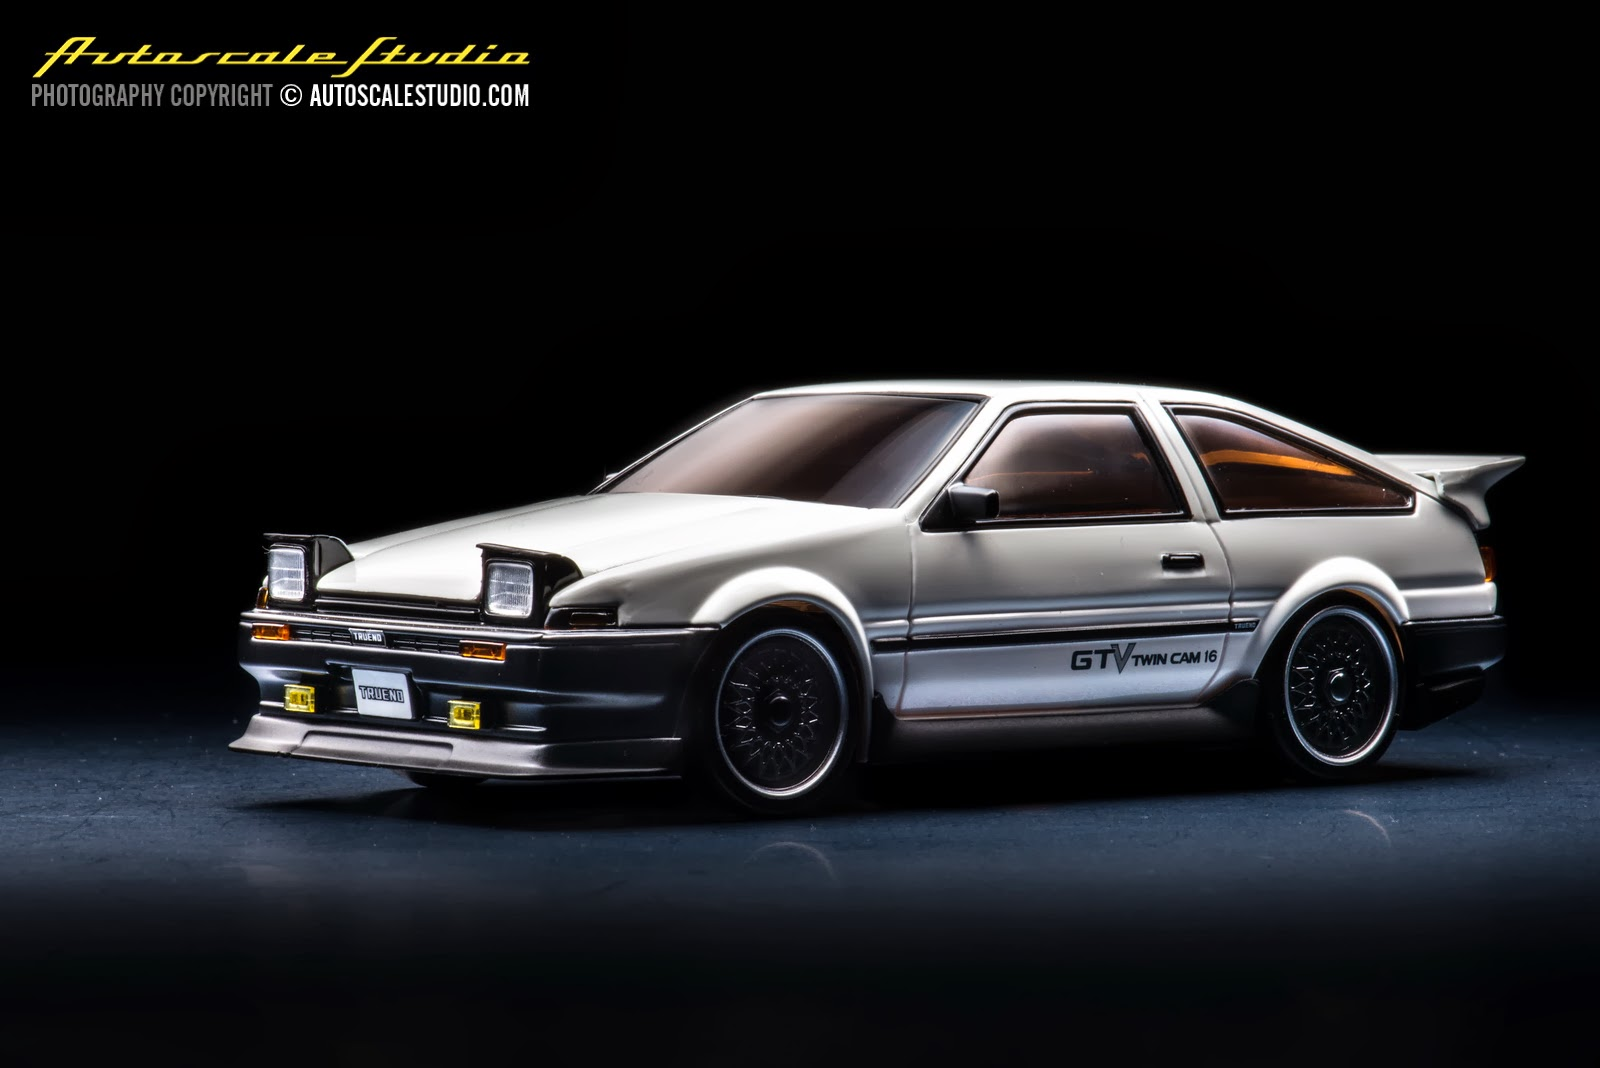 mzp410w toyota sprinter trueno ae86 aero version white. Black Bedroom Furniture Sets. Home Design Ideas